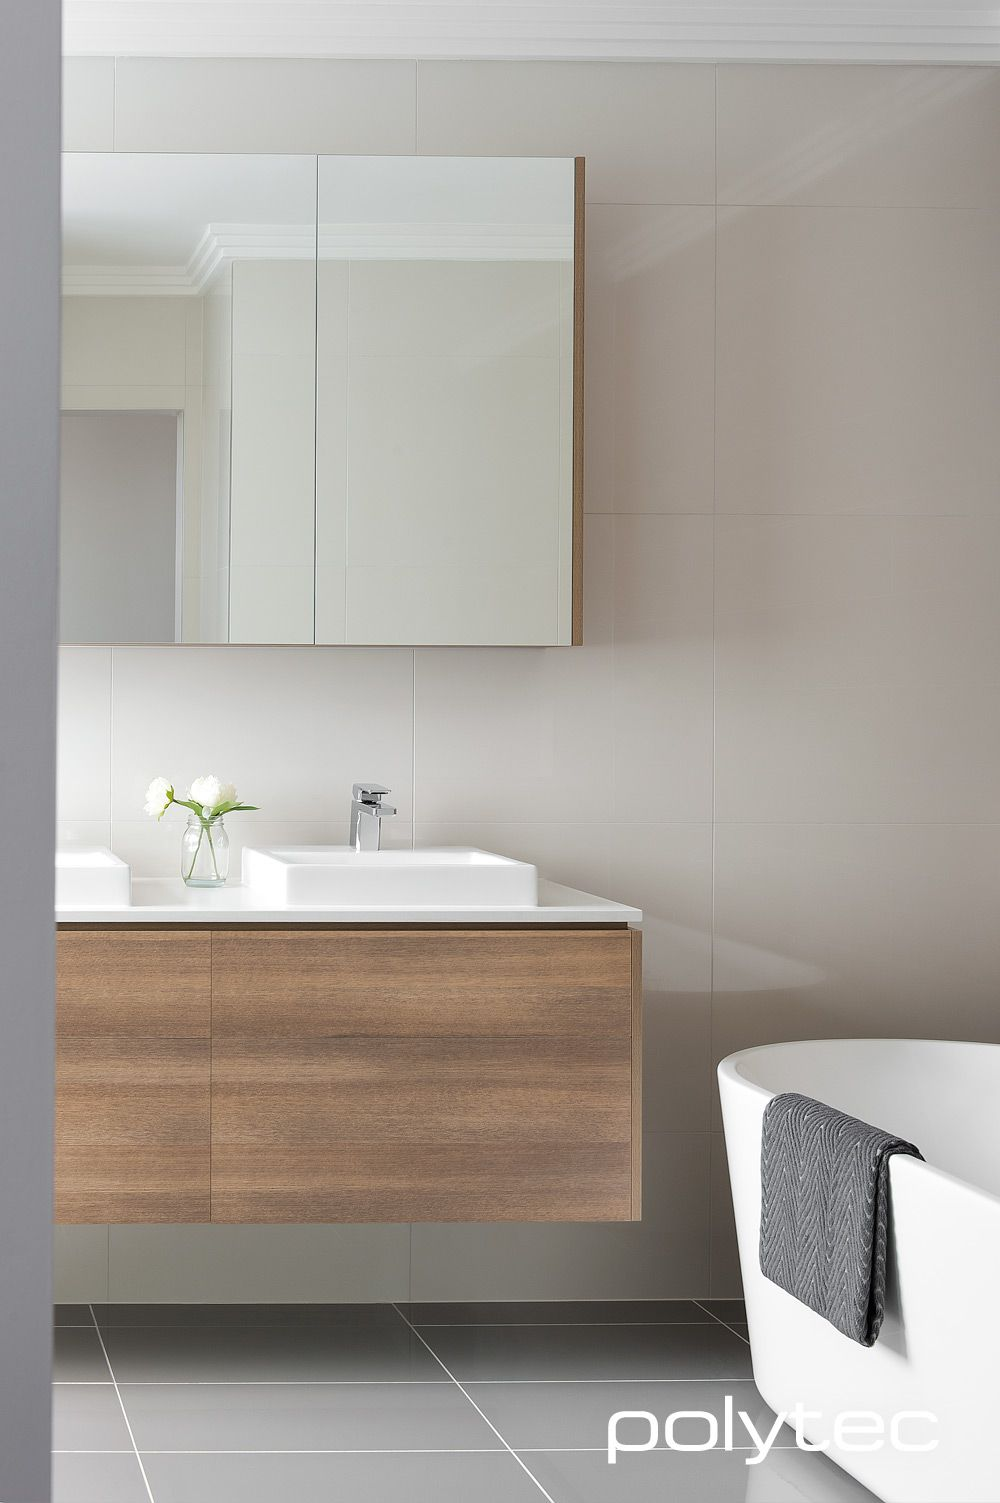 Interview Bathrooms Design Ideas Sydney Architect Kelvin Ho Of Akin Creative